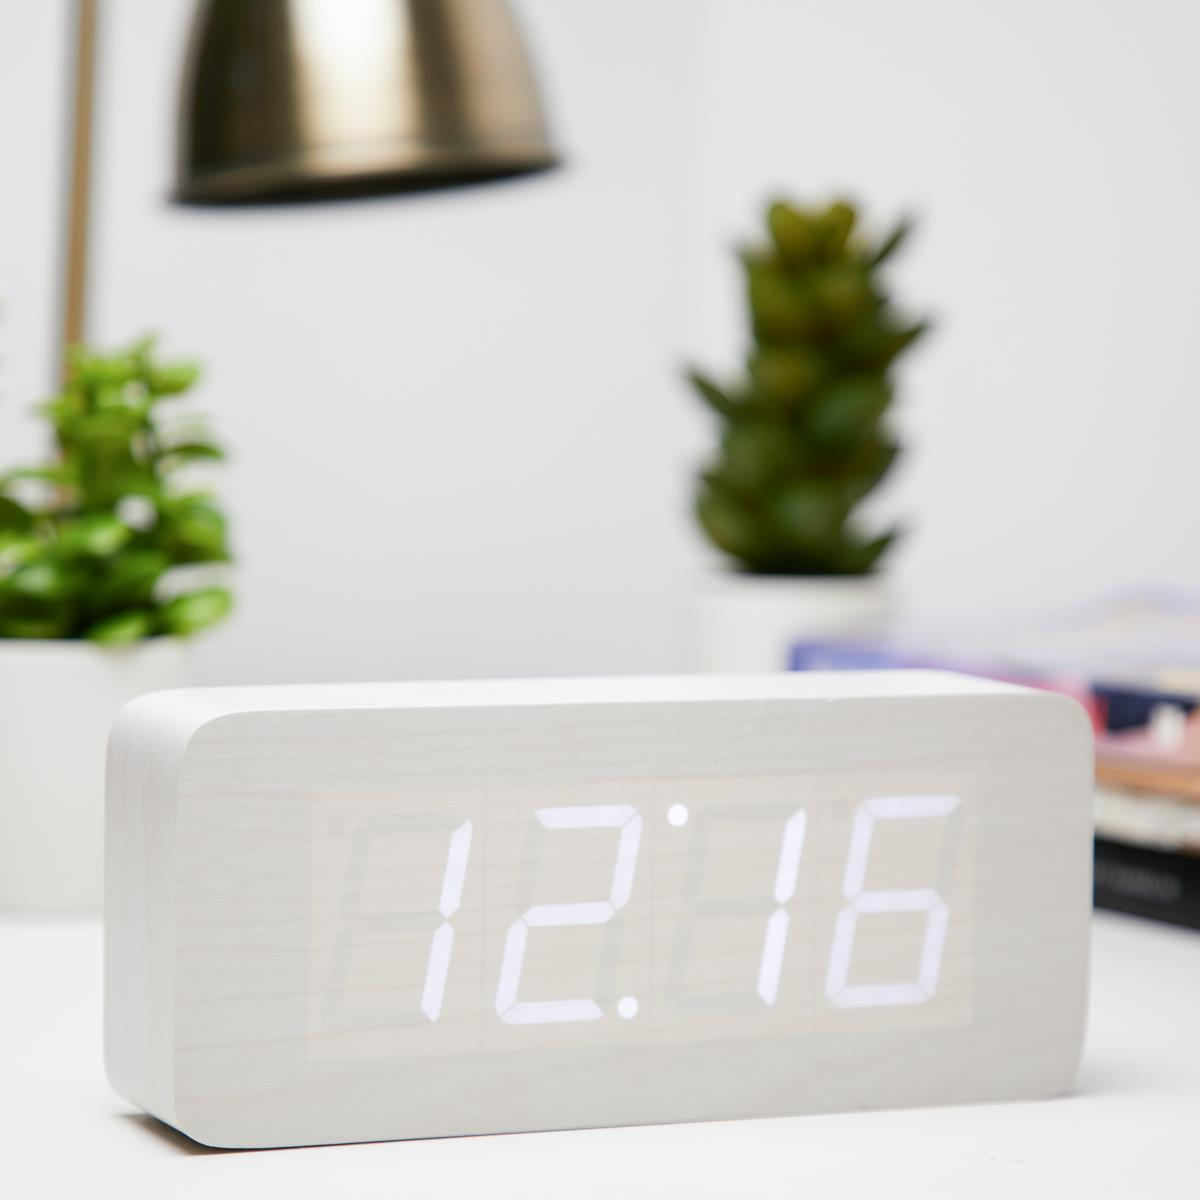 Checkmate LED Big Wood Cuboid Desk Clock White 21cm VGY 6602W 11